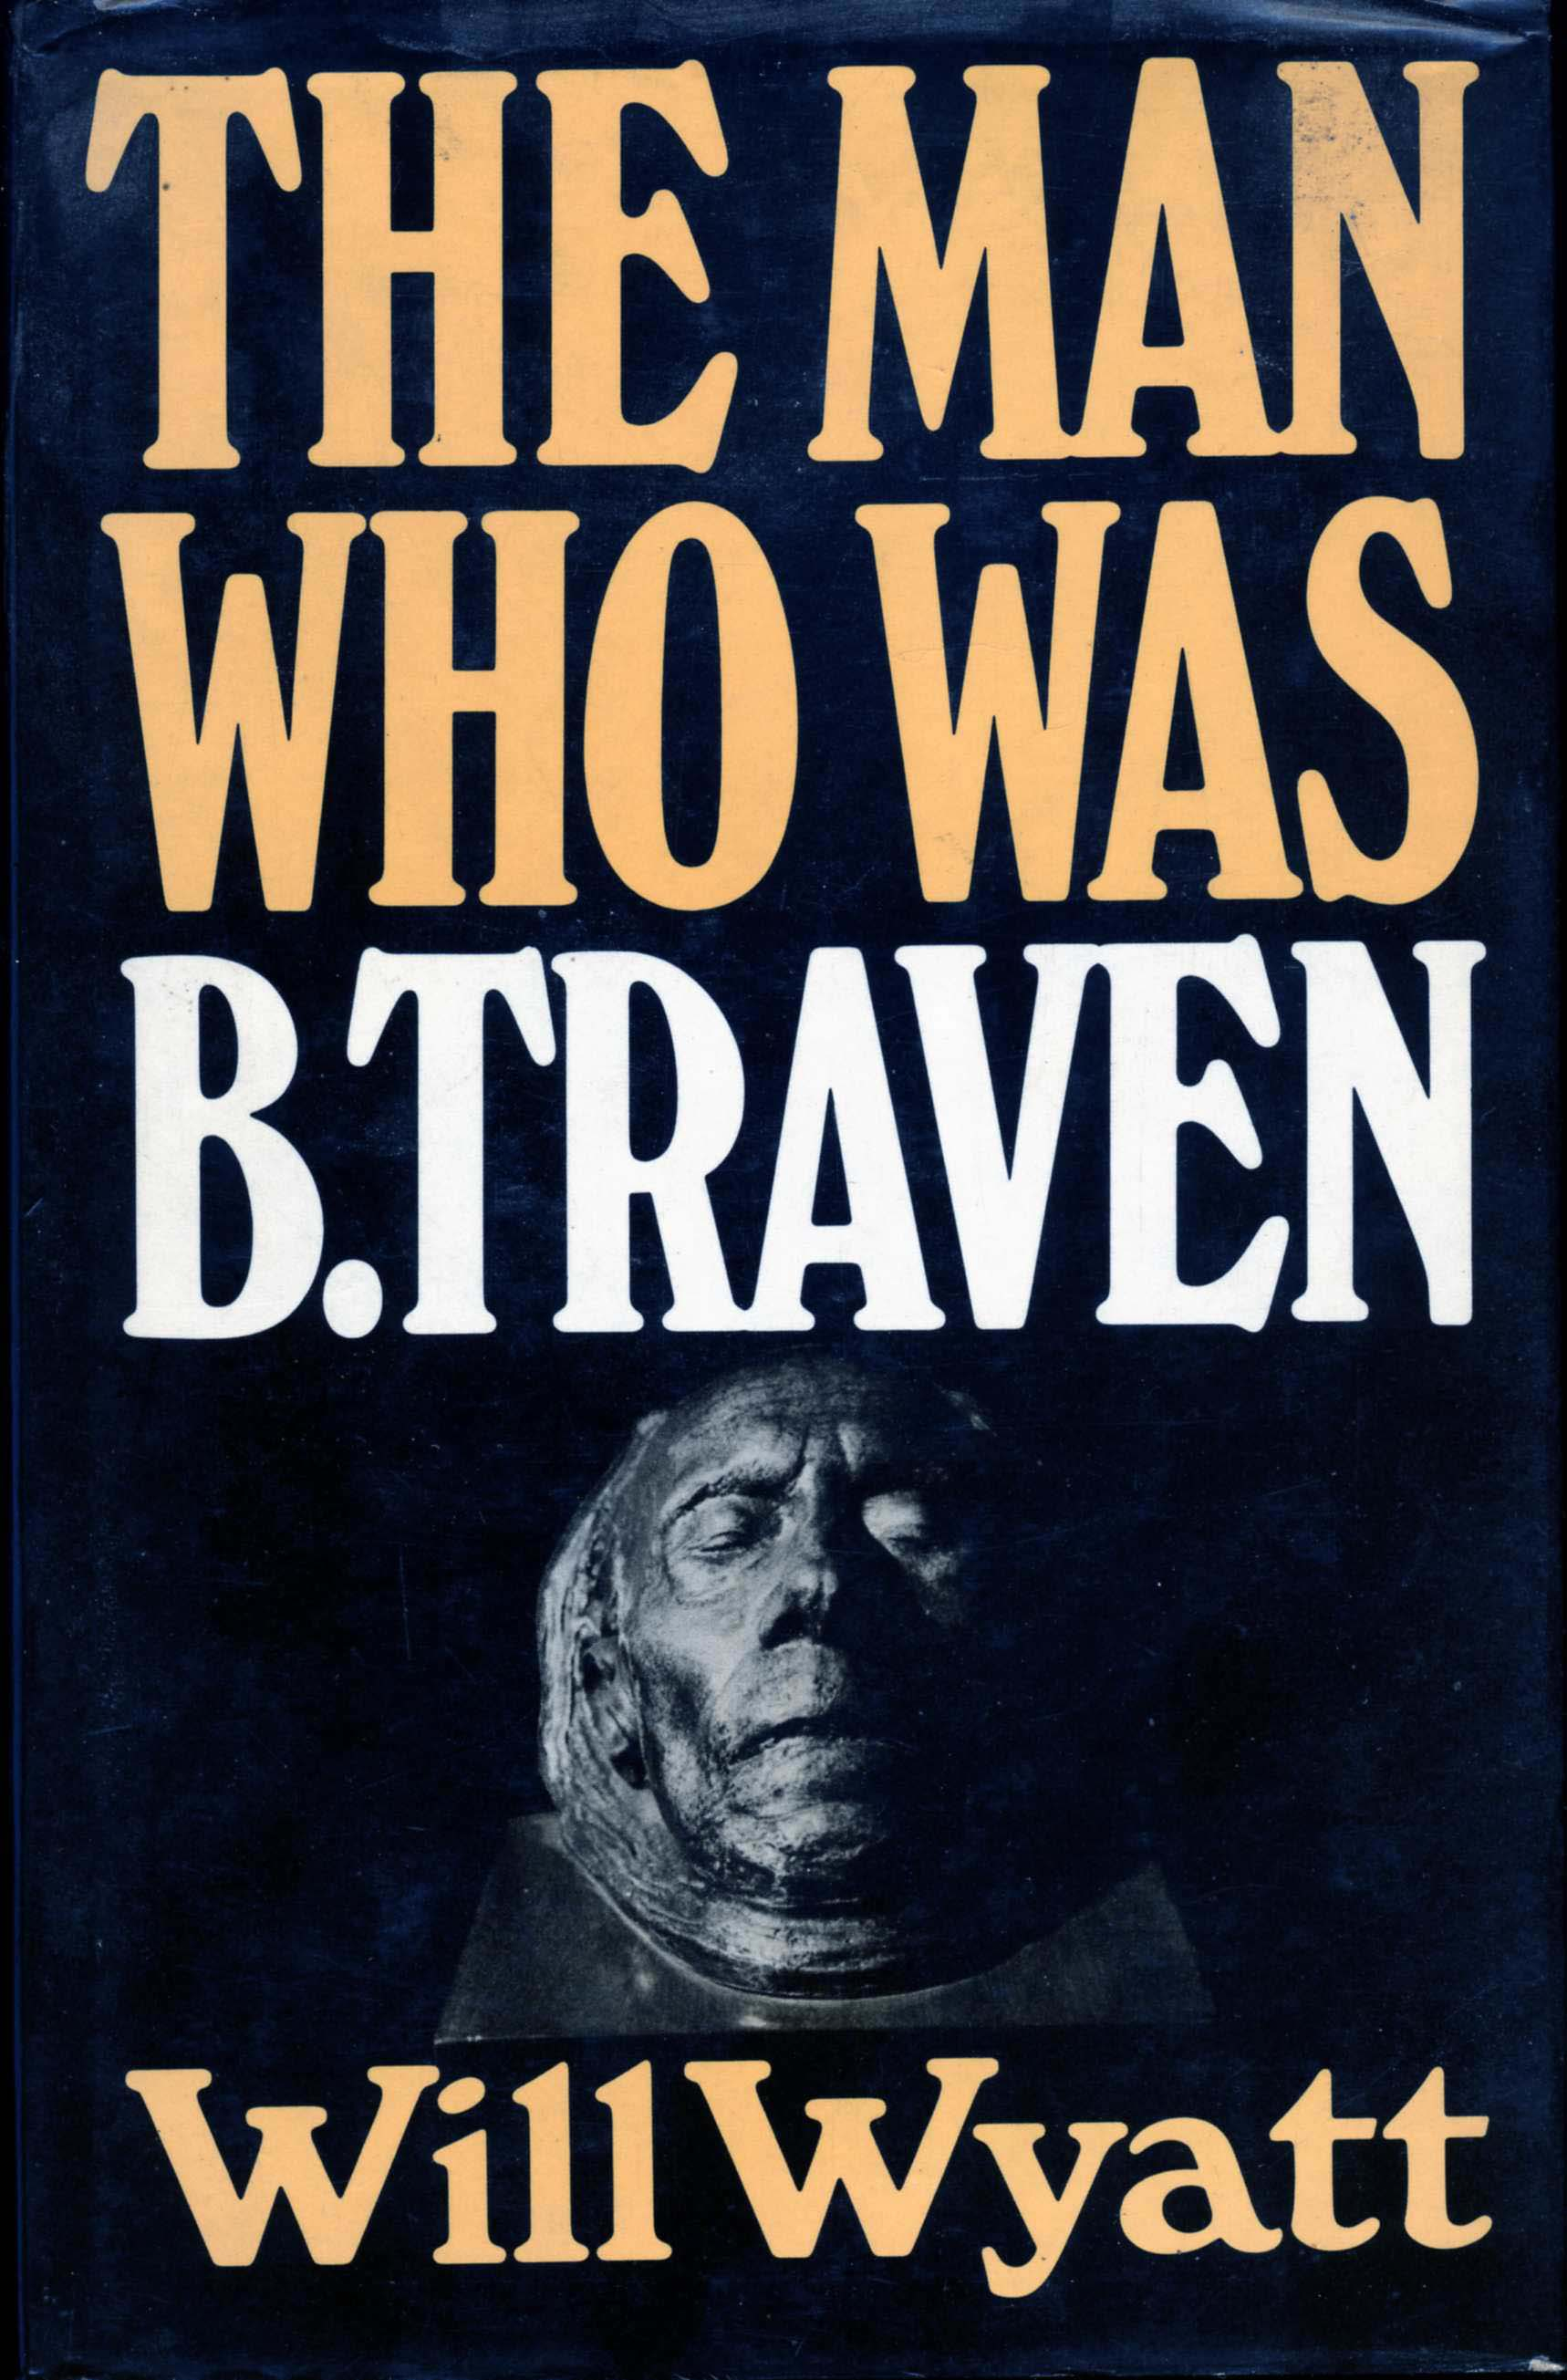 The Man Who Was B. Traven